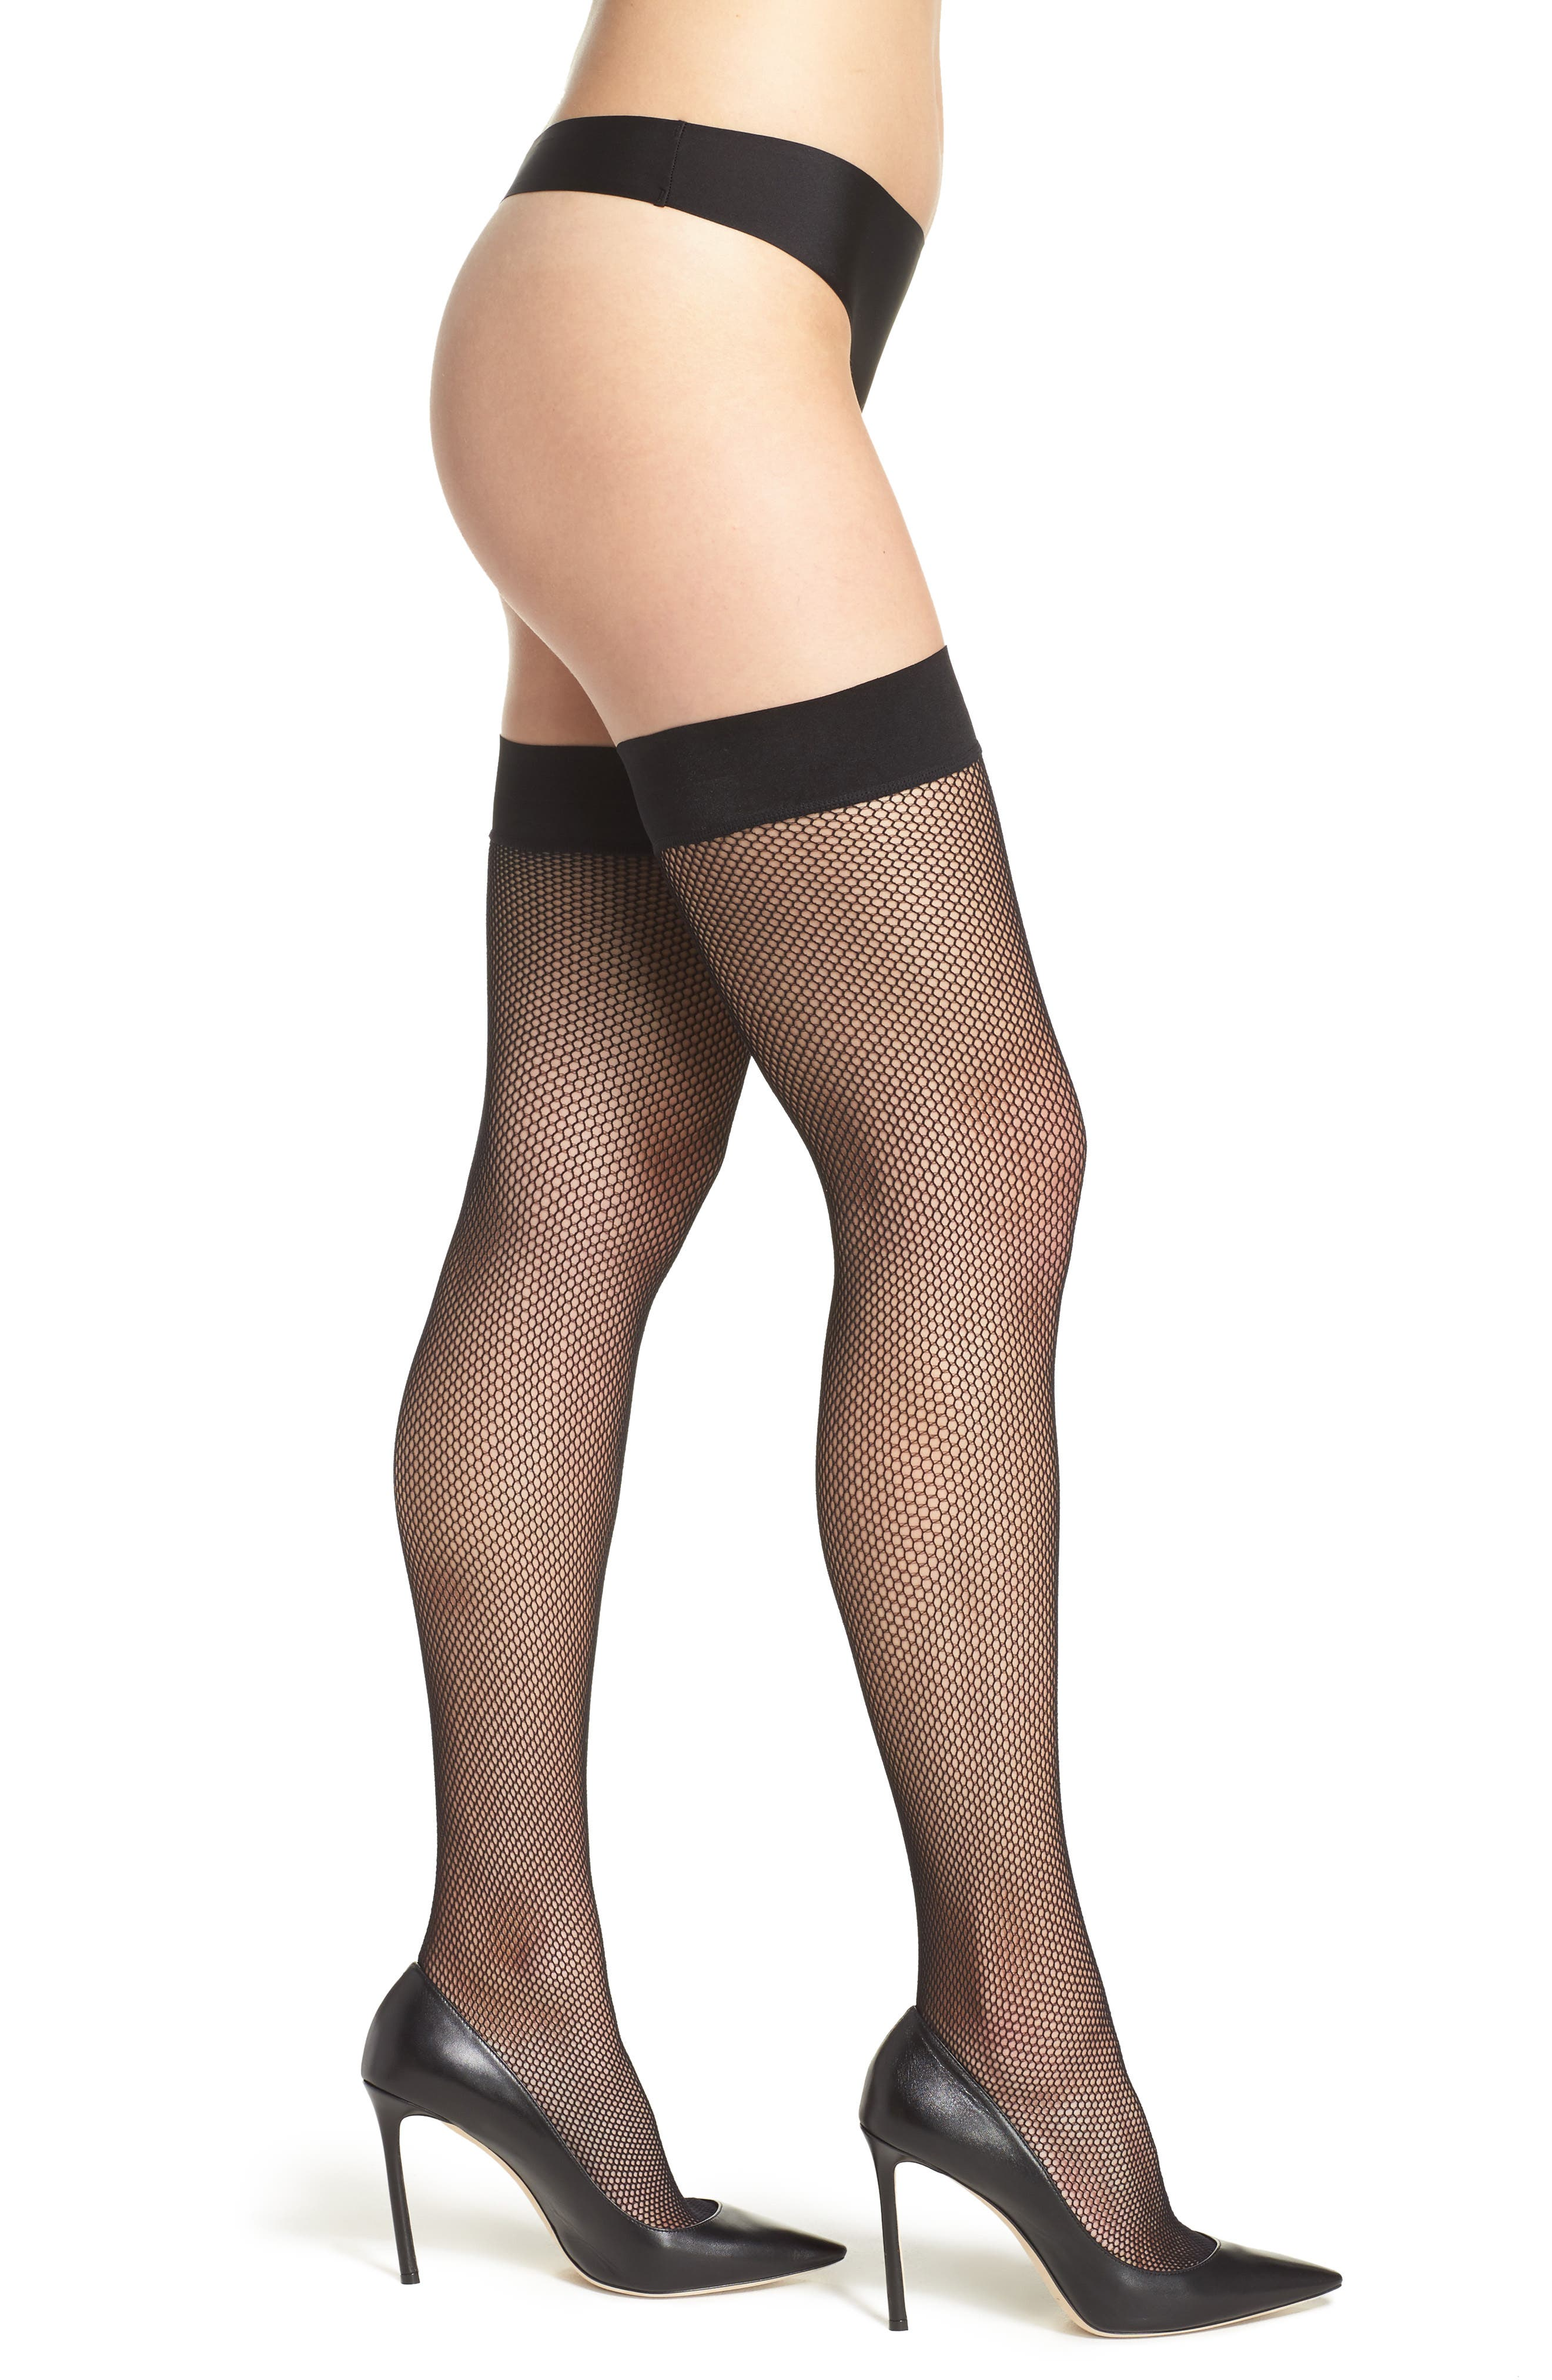 DKNY Fishnet Stay-Up Stockings